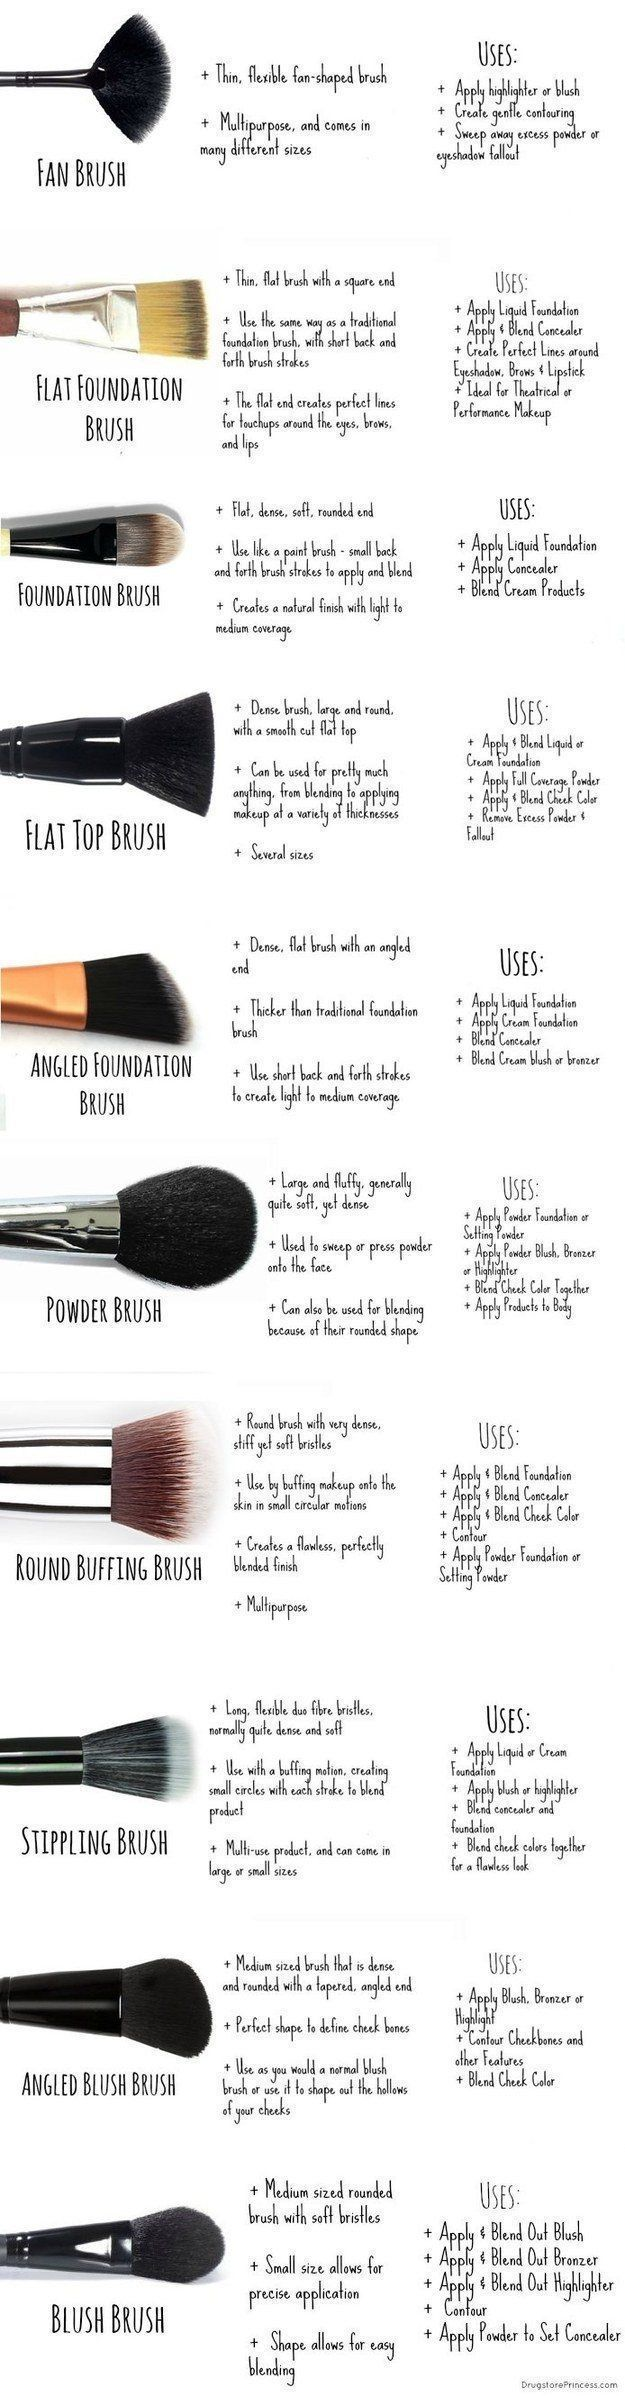 Makeup Brushes 101   Detailed Guide On How To Use Your Set   Best Makeup Guide For Beginners by Makeup Tutorials at http   makeuptutorials com makeup brushes 101 detailed guide on how to use your set